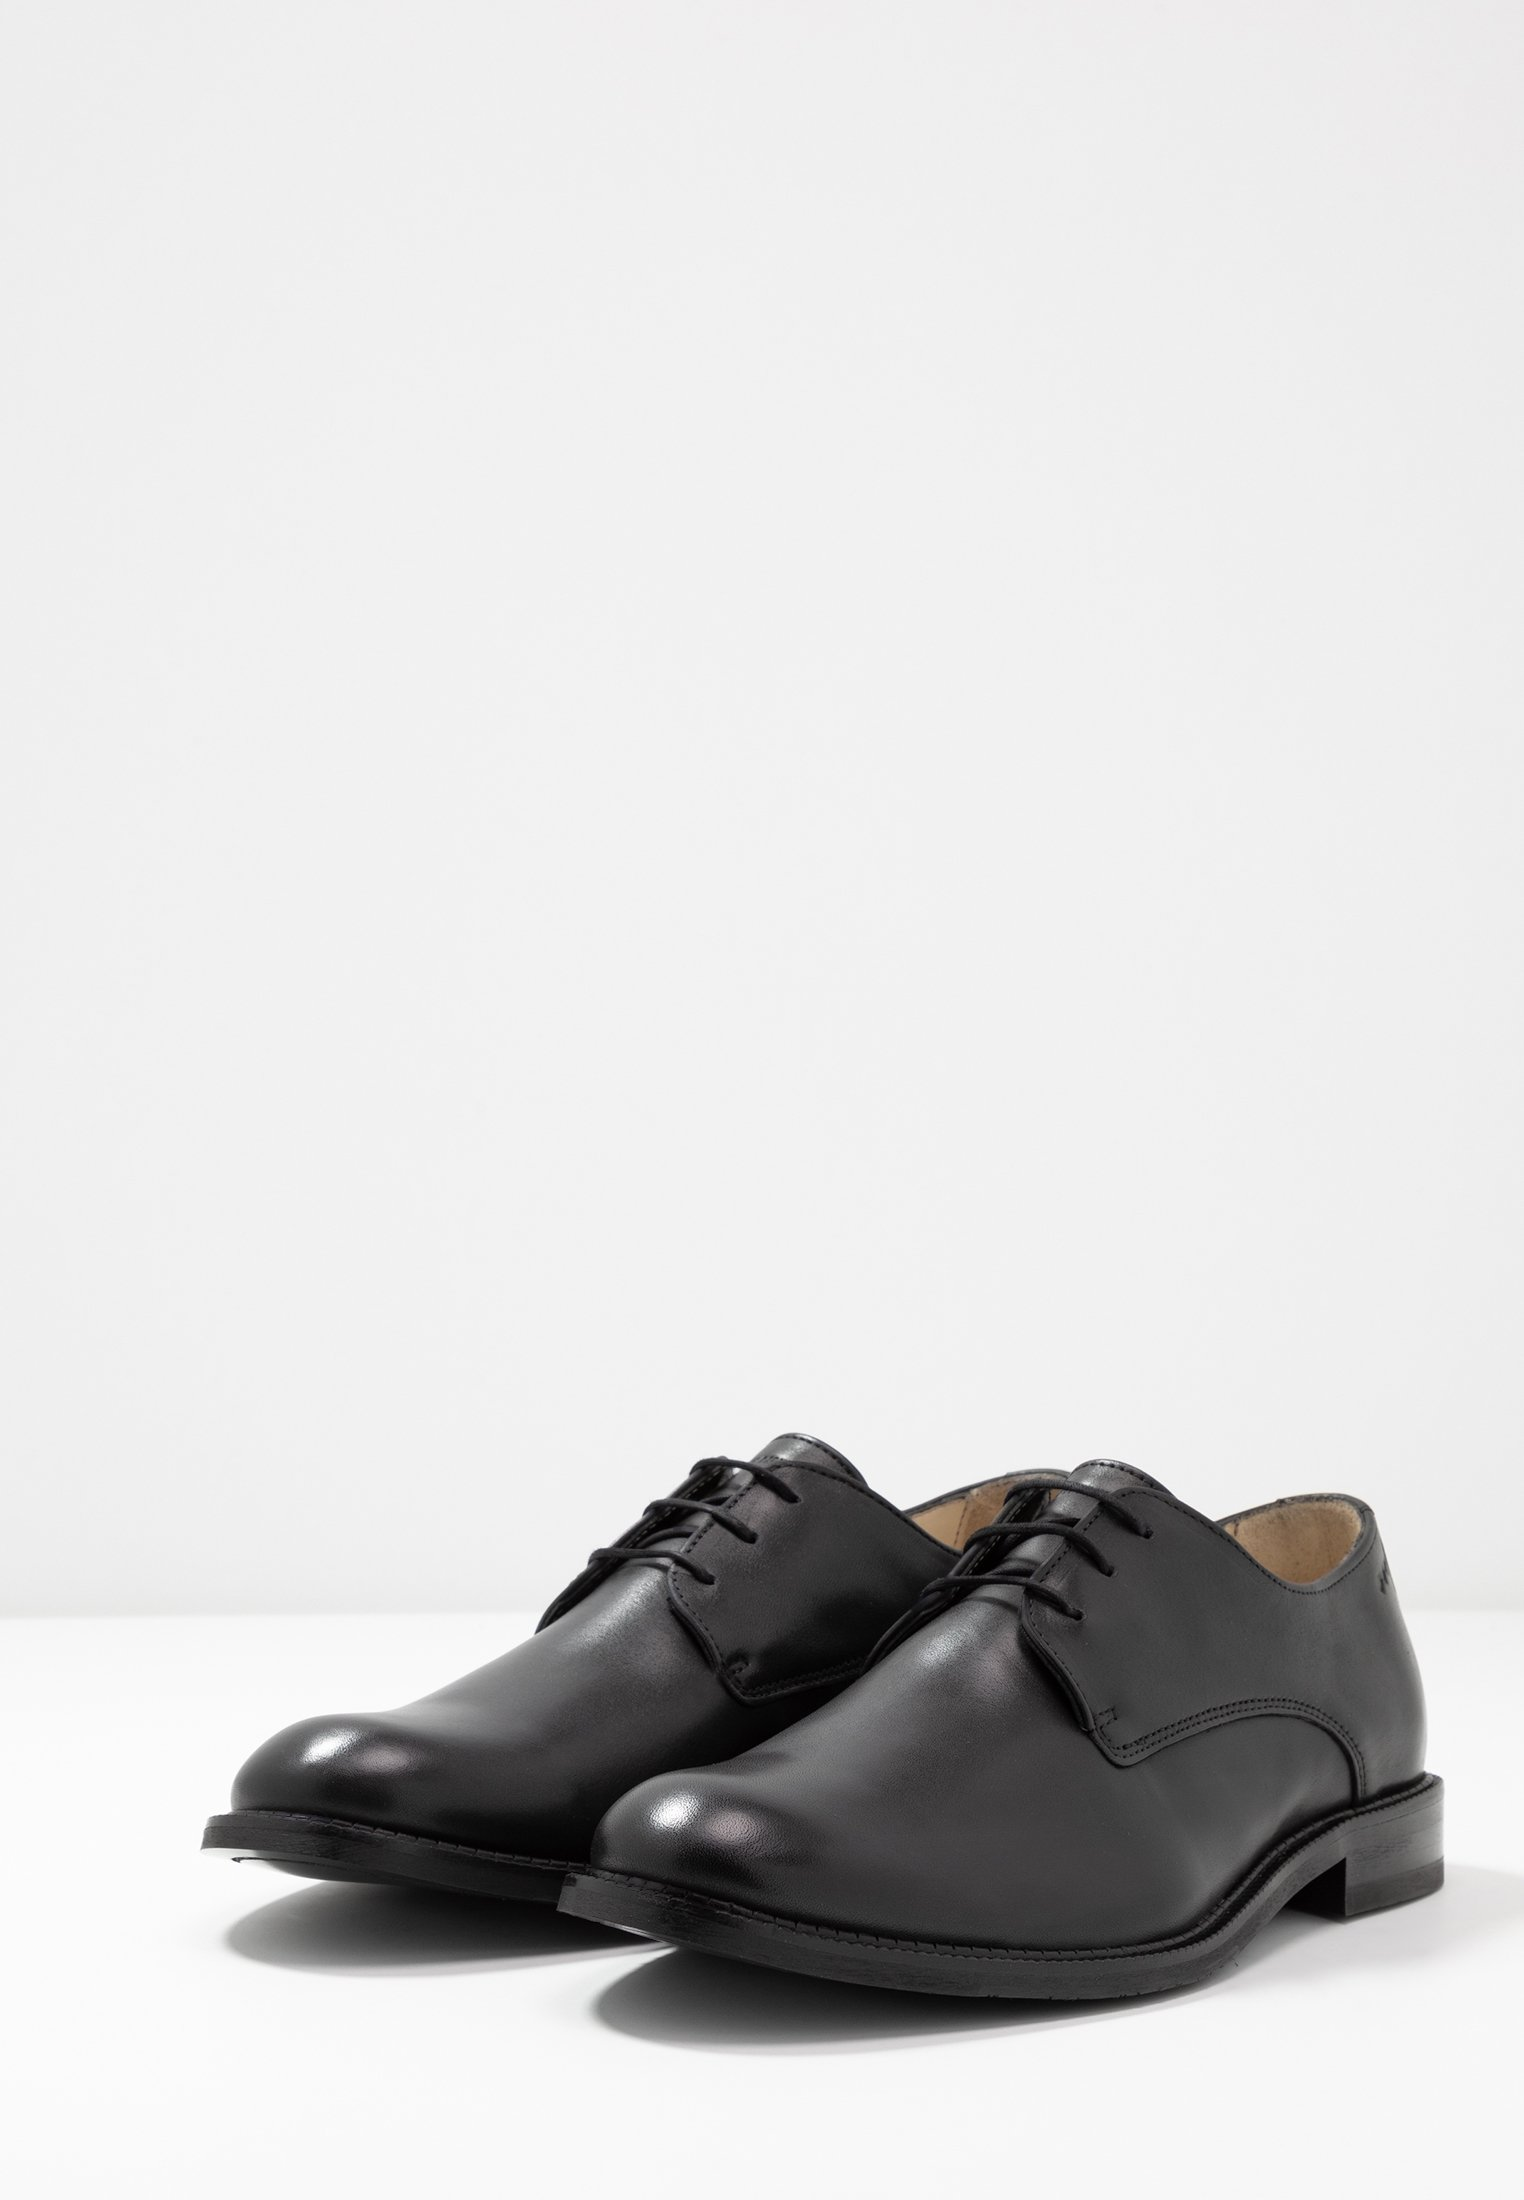 Meilleurs prix Royal RepubliQ ALIAS CLASSIC DERBY SHOE Derbies & Richelieus black